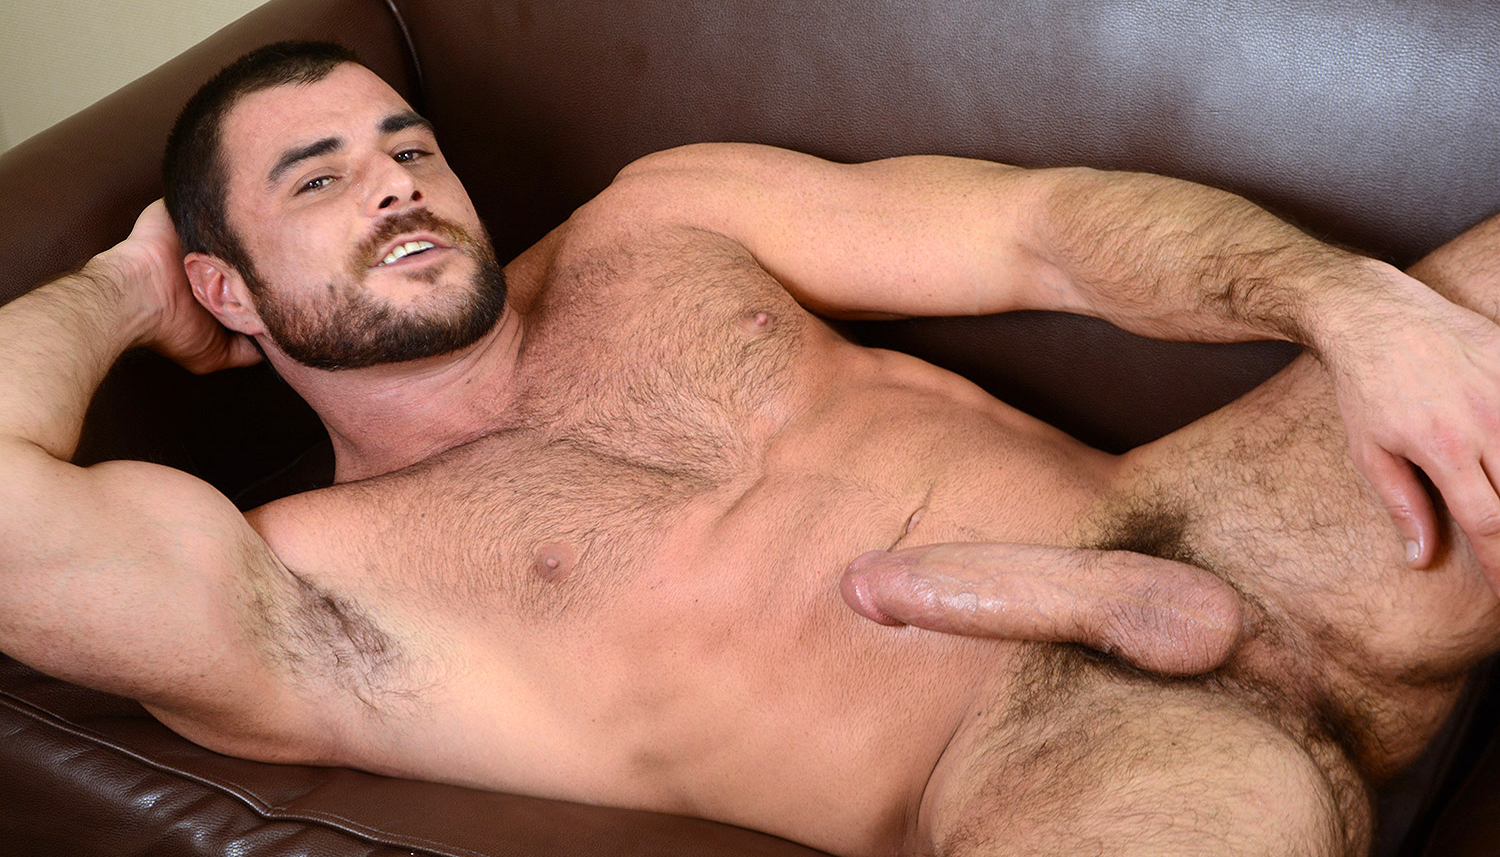 Teen cums all over big dick the olympic